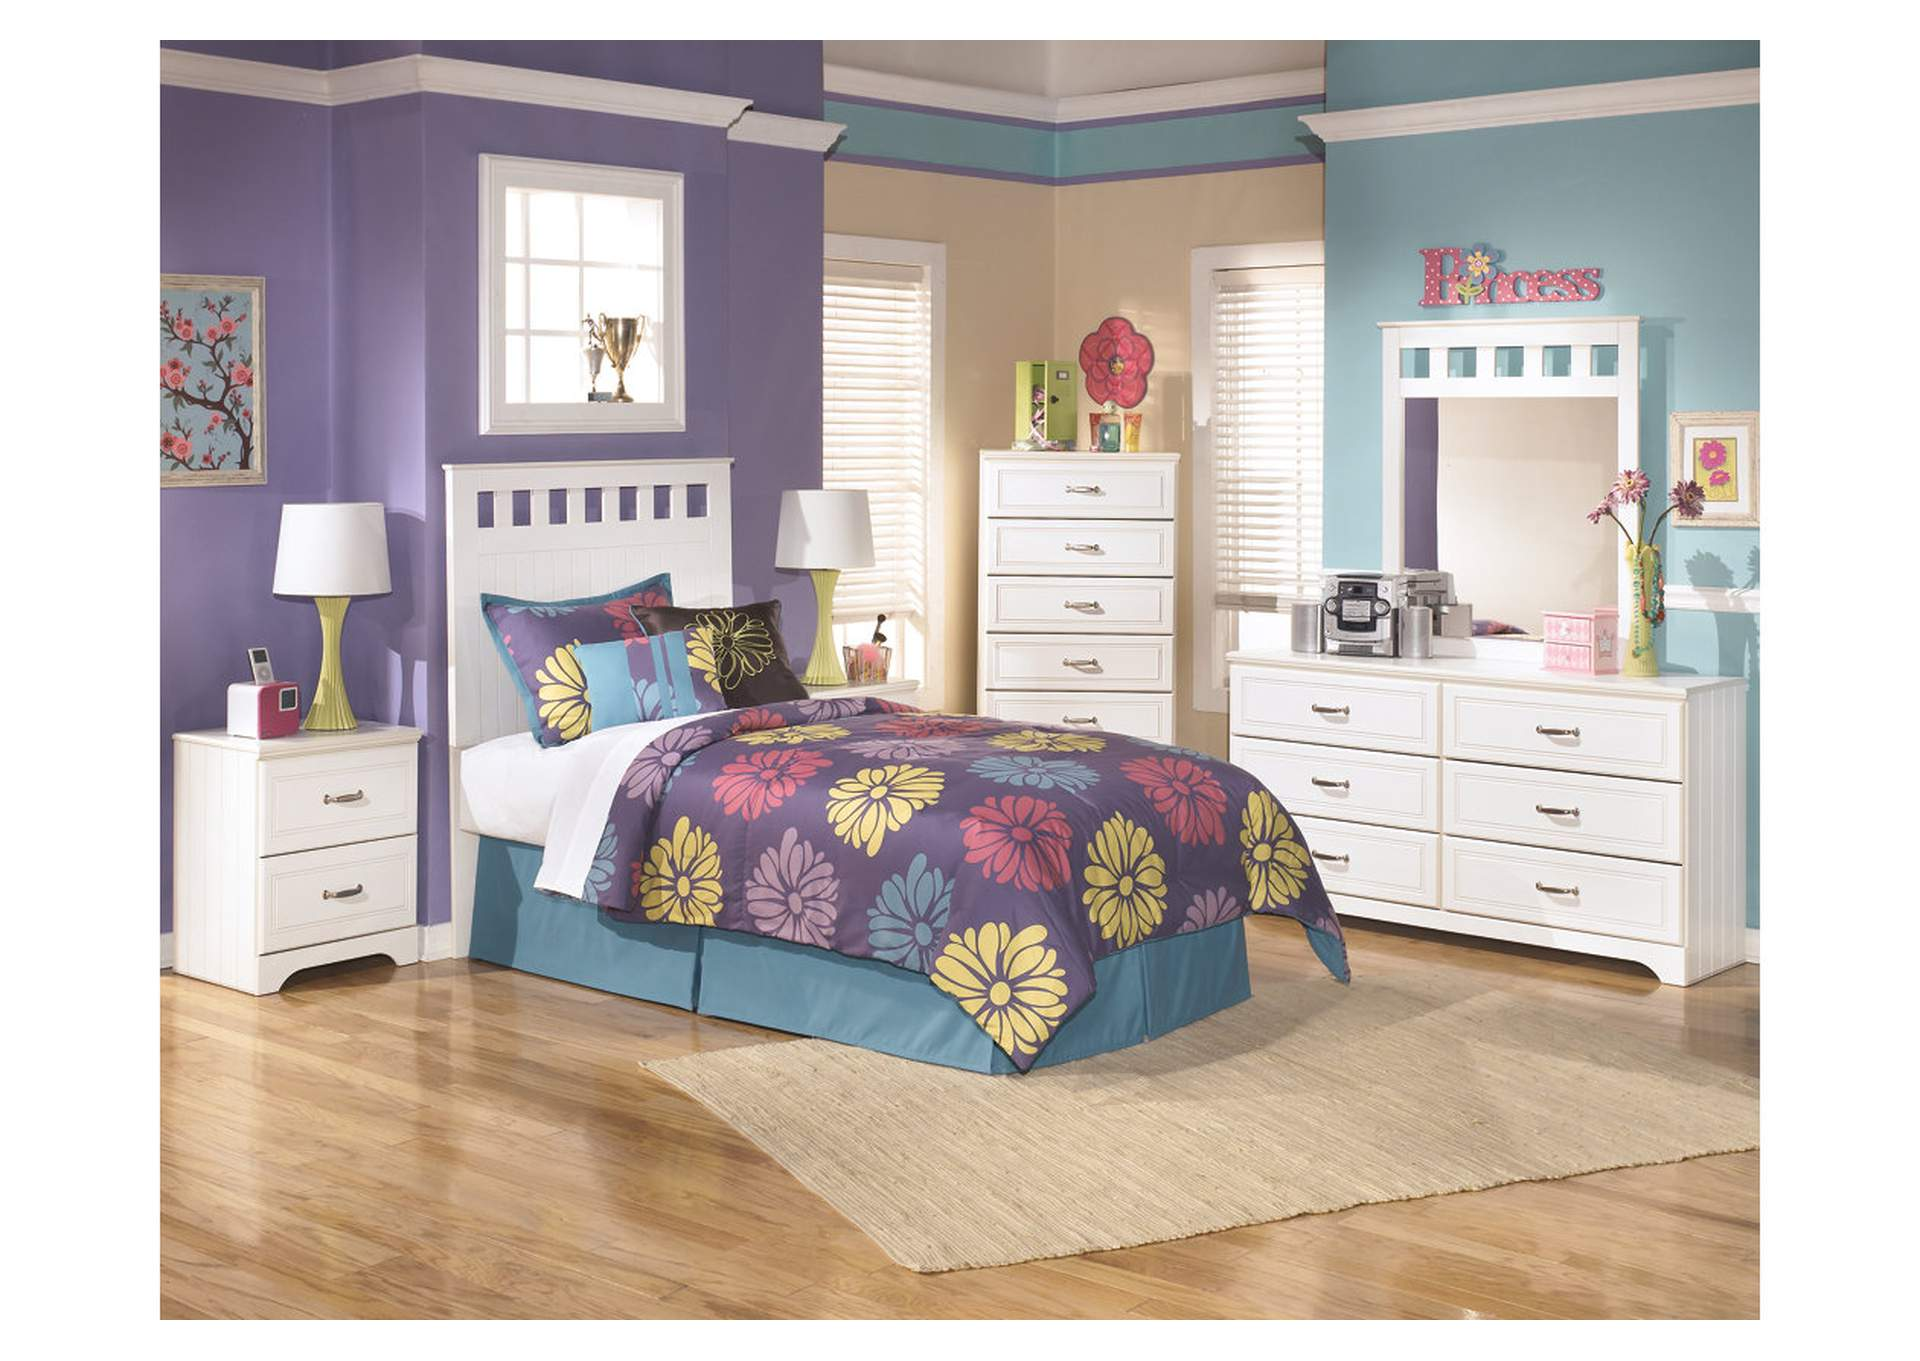 Lulu Twin Panel Headboard w/Dresser, Mirror & Nightstand,Signature Design By Ashley